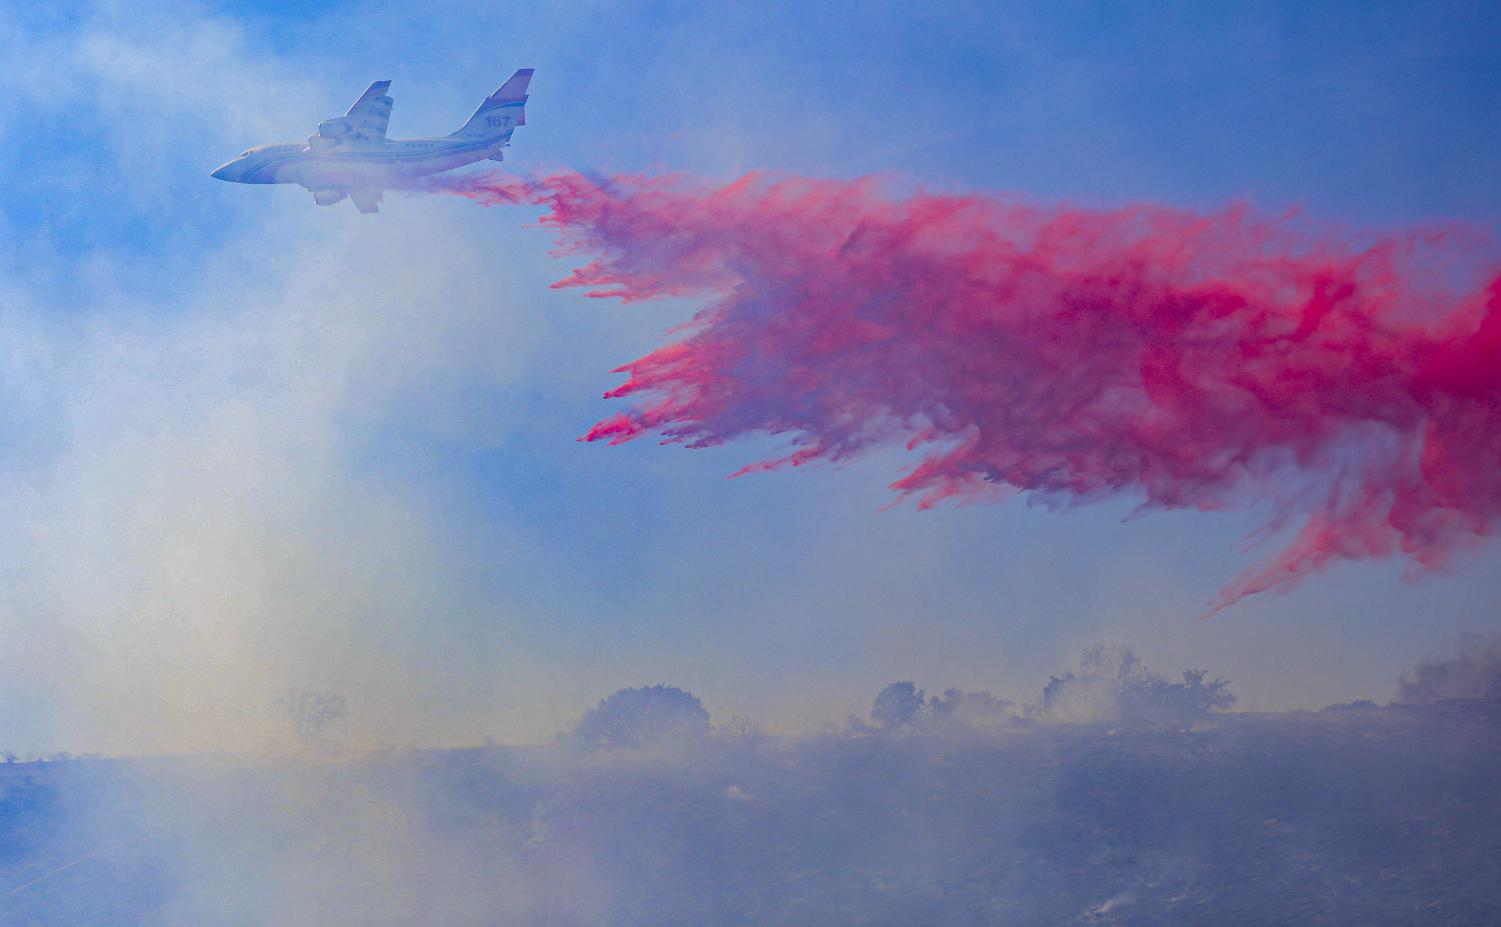 A Cal Fire plane drops fire retardant ahead of the Country Fire to halt its forward progress on Thursday, April 29, 2021.